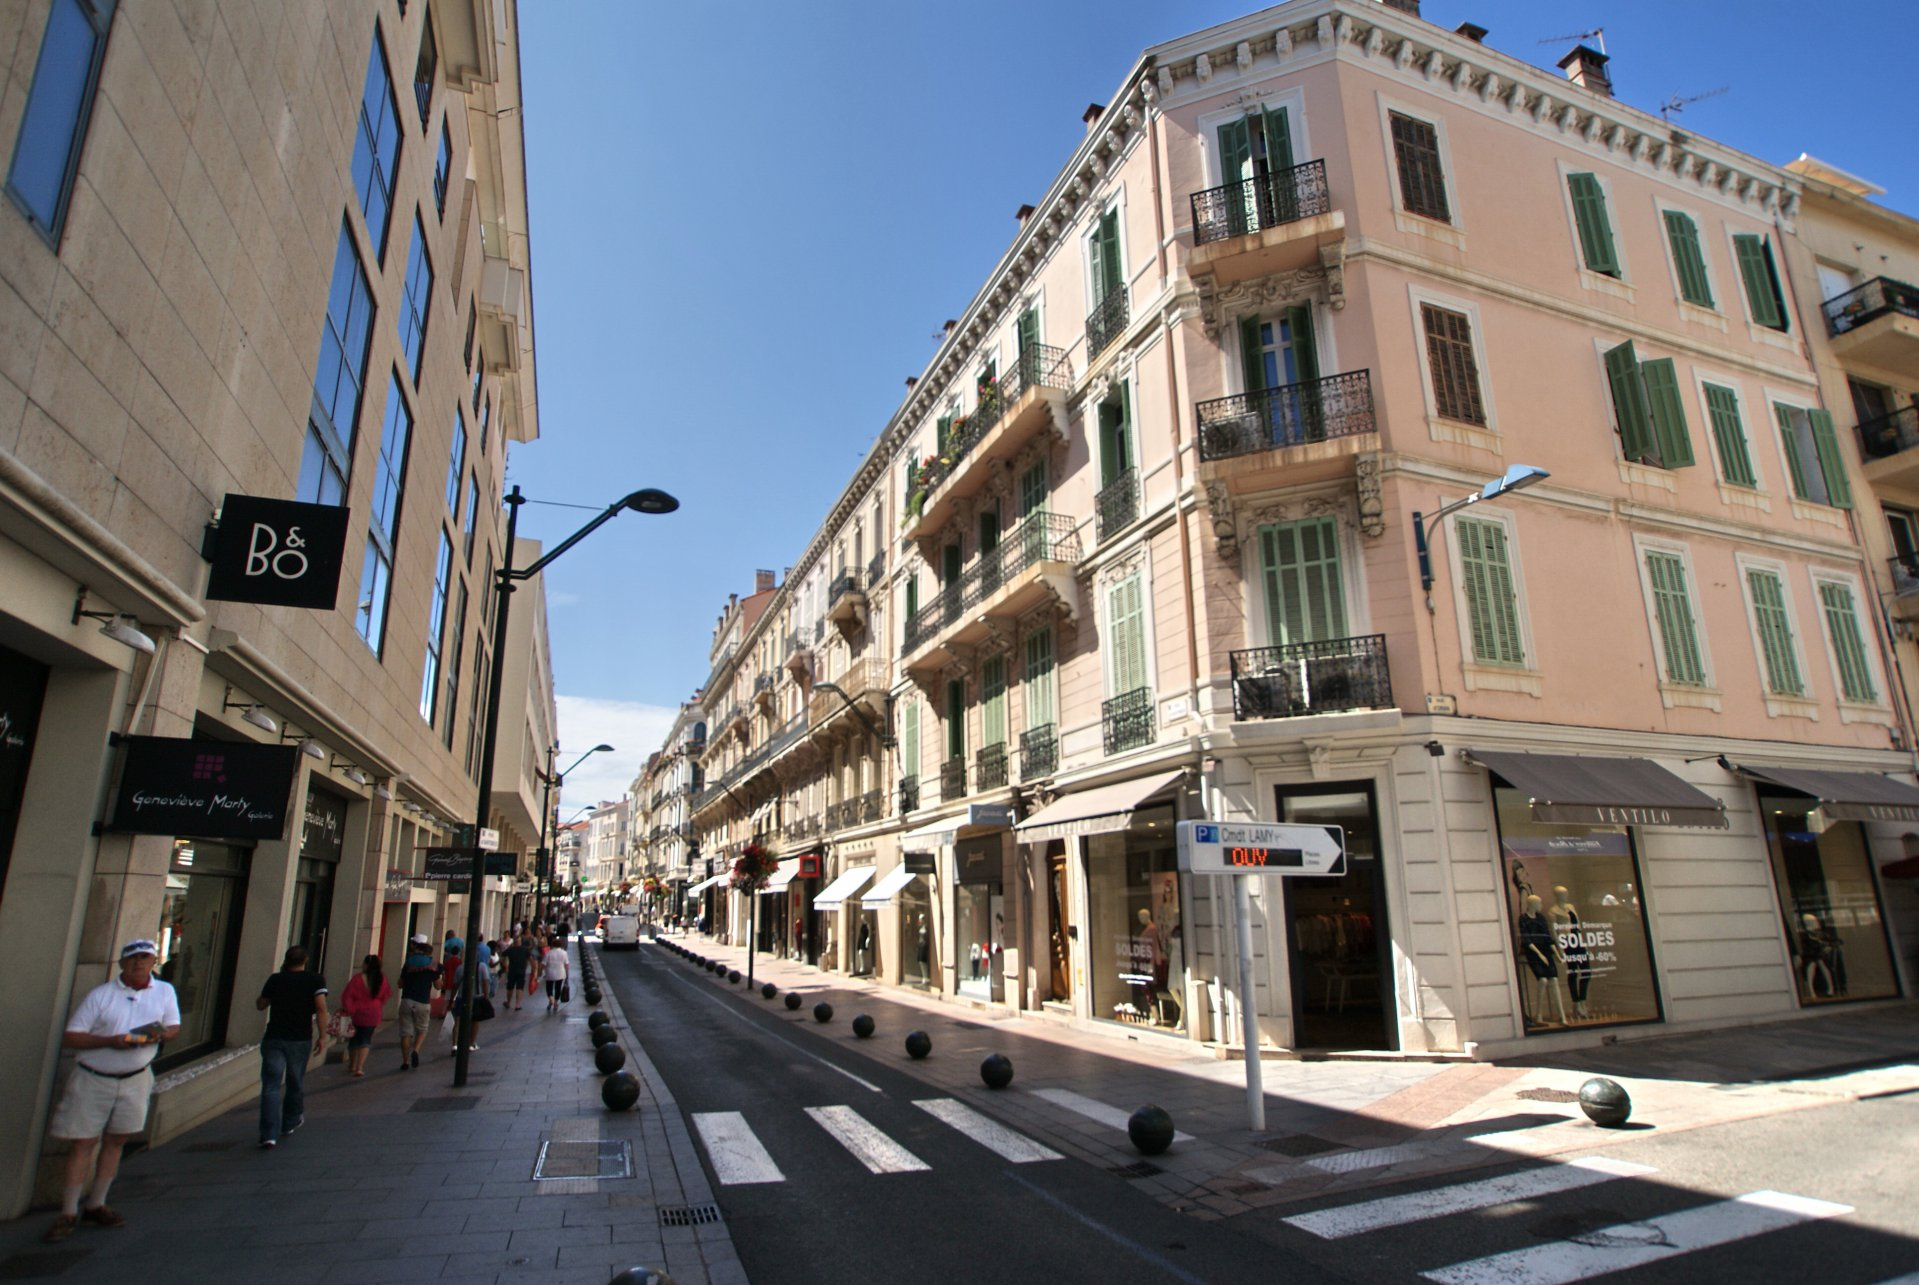 CANNES RUE D'ANTIBES - LOCATION PURE